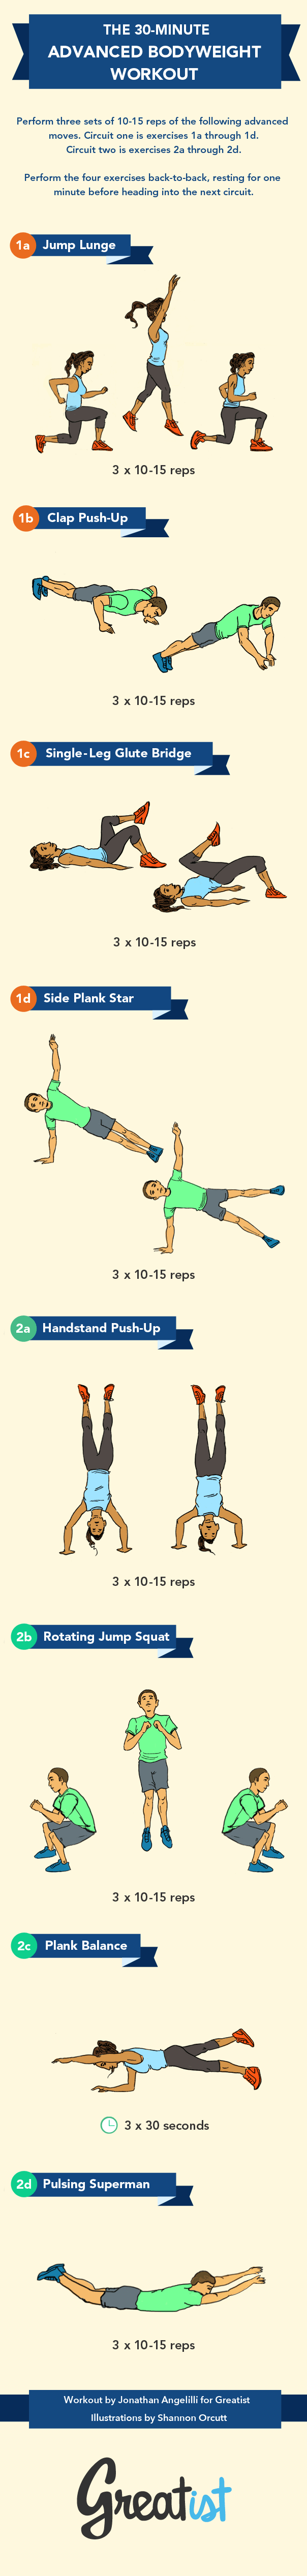 This 30-minute Bodyweight Workout is Totally Kickass